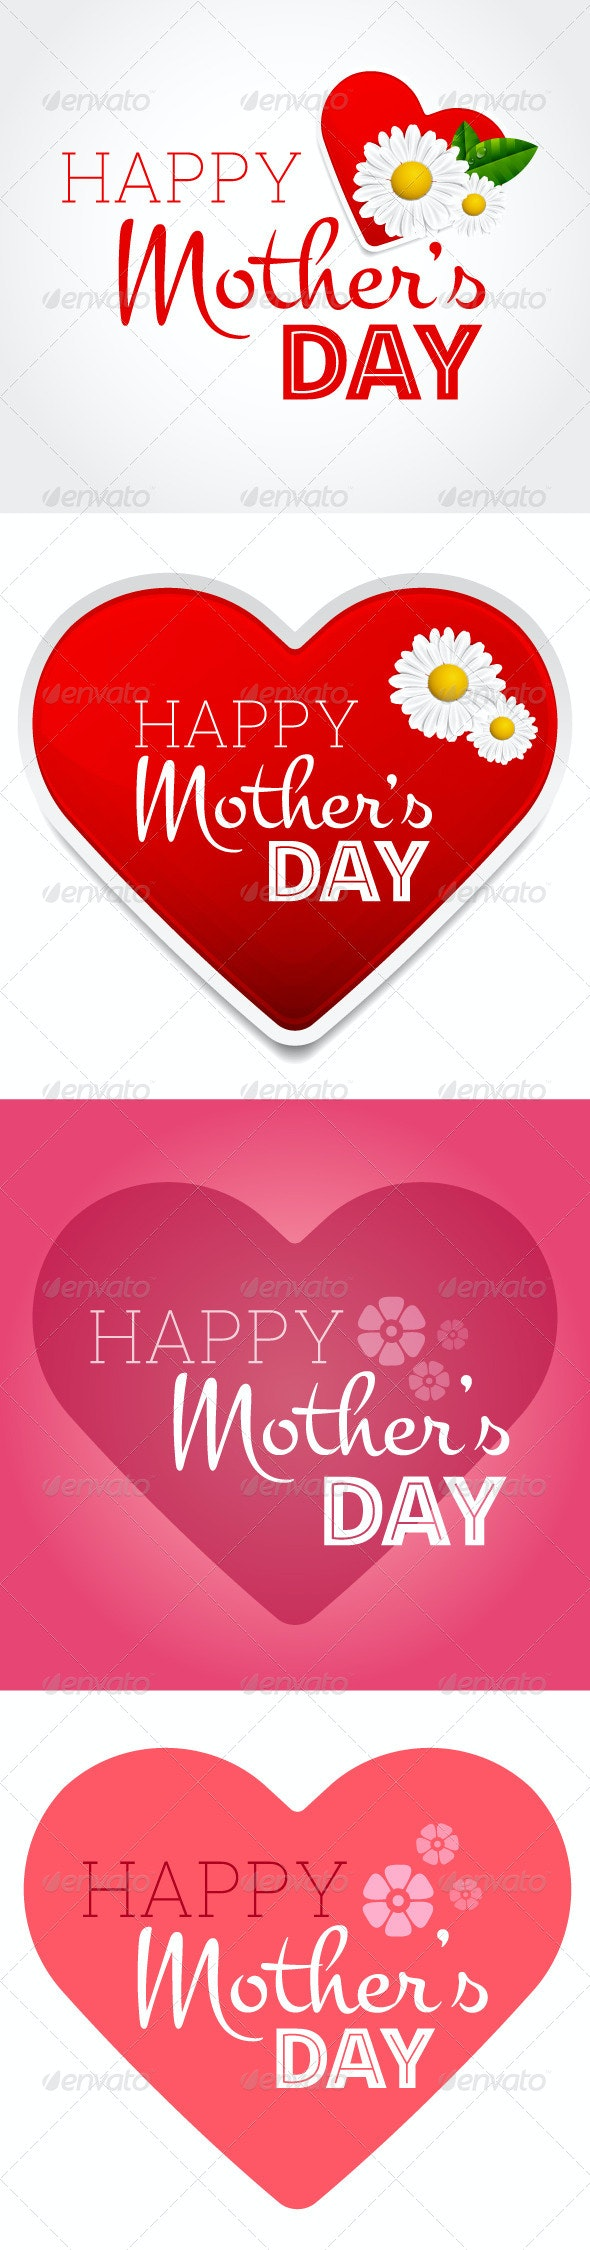 Mothers Day Greeting Cards - Miscellaneous Seasons/Holidays